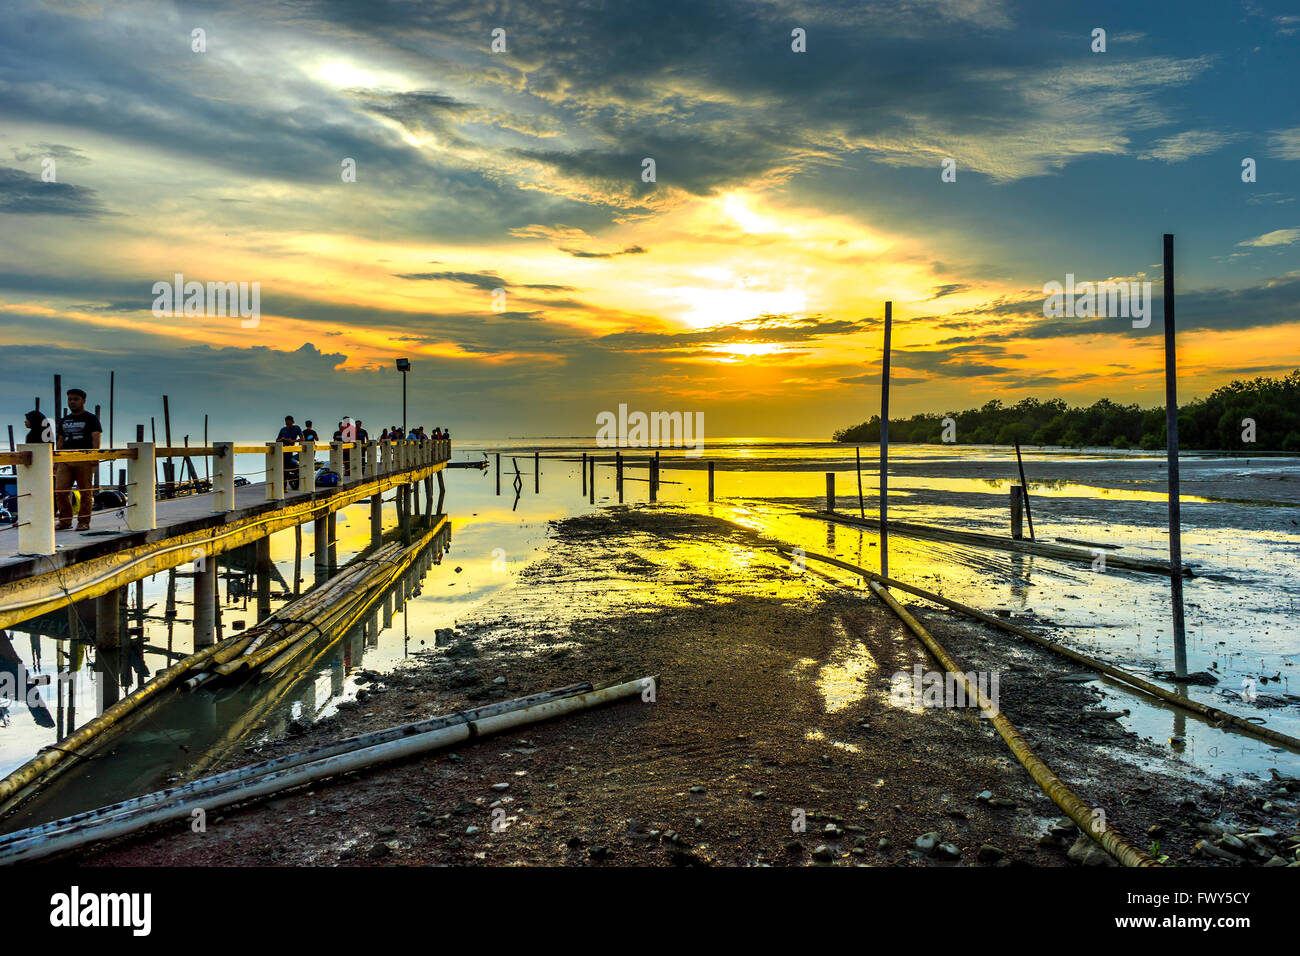 Johore Malaysia Dec 25 2016 Nice View Of Jetty With Sunset Stock Photo Royalty Free Image